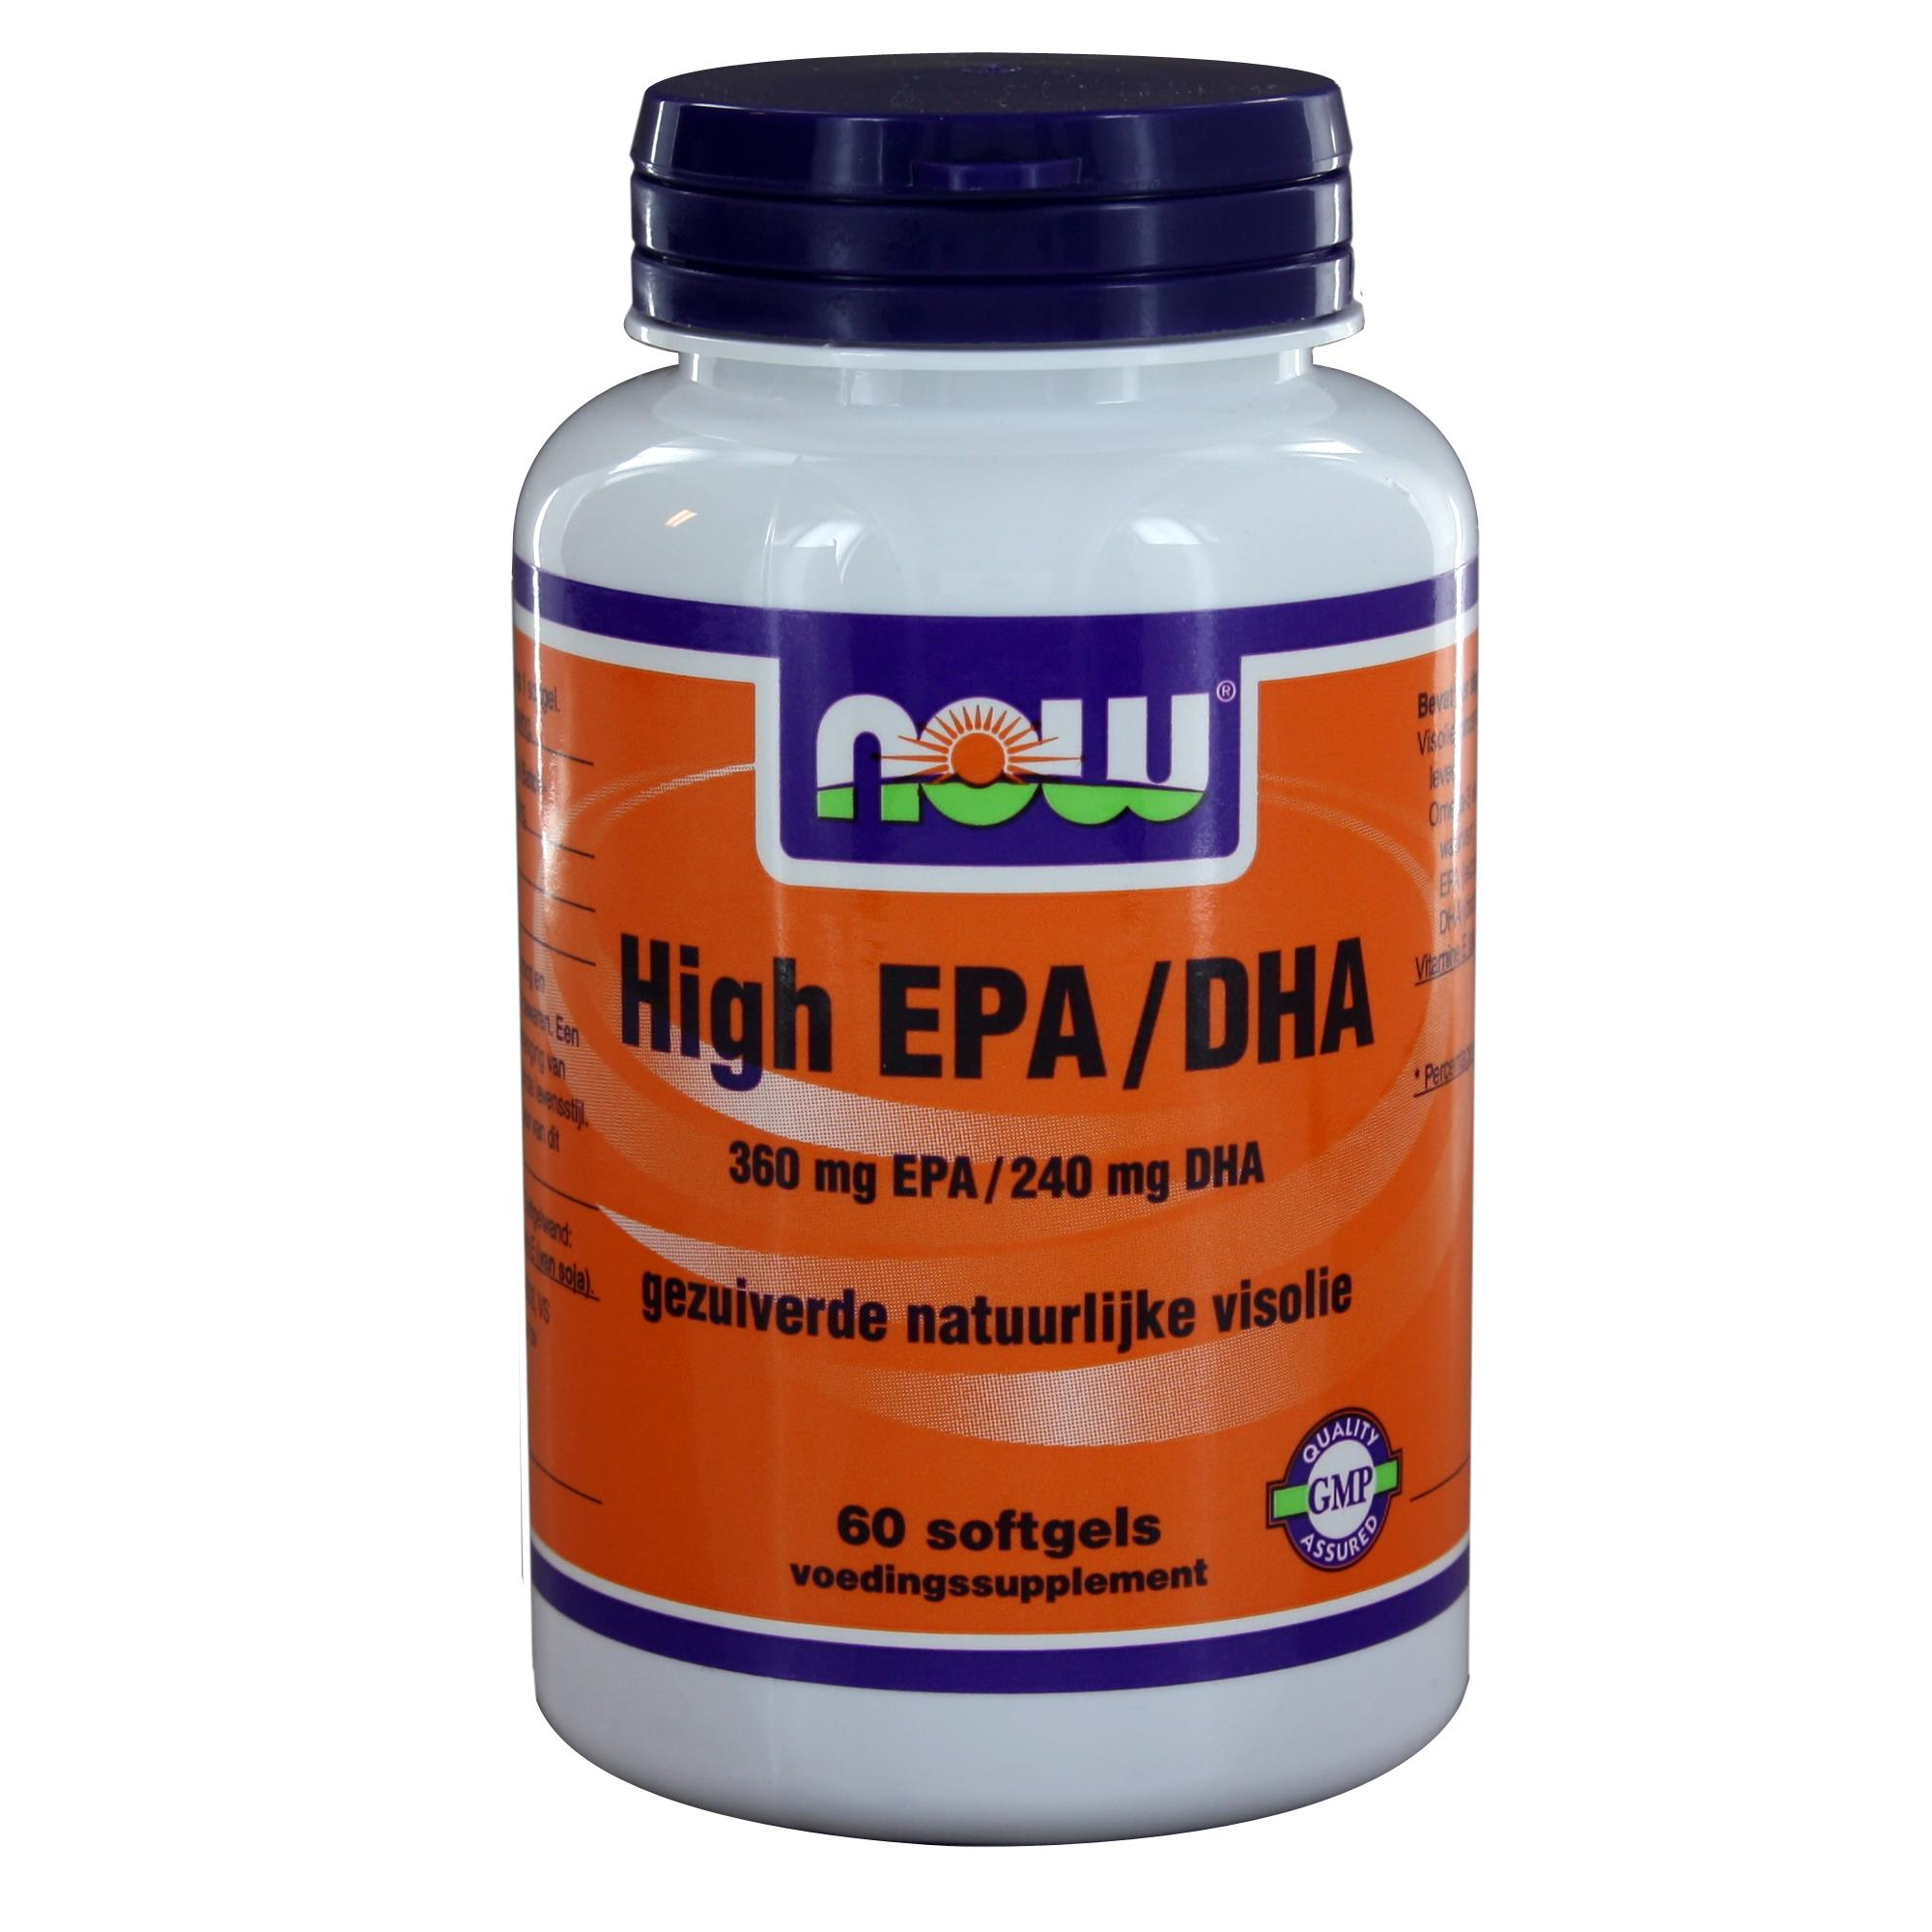 img 8020 - Omega-3 Plus 360 mg EPA 240 mg DHA (60 softgels) - NOW Foods